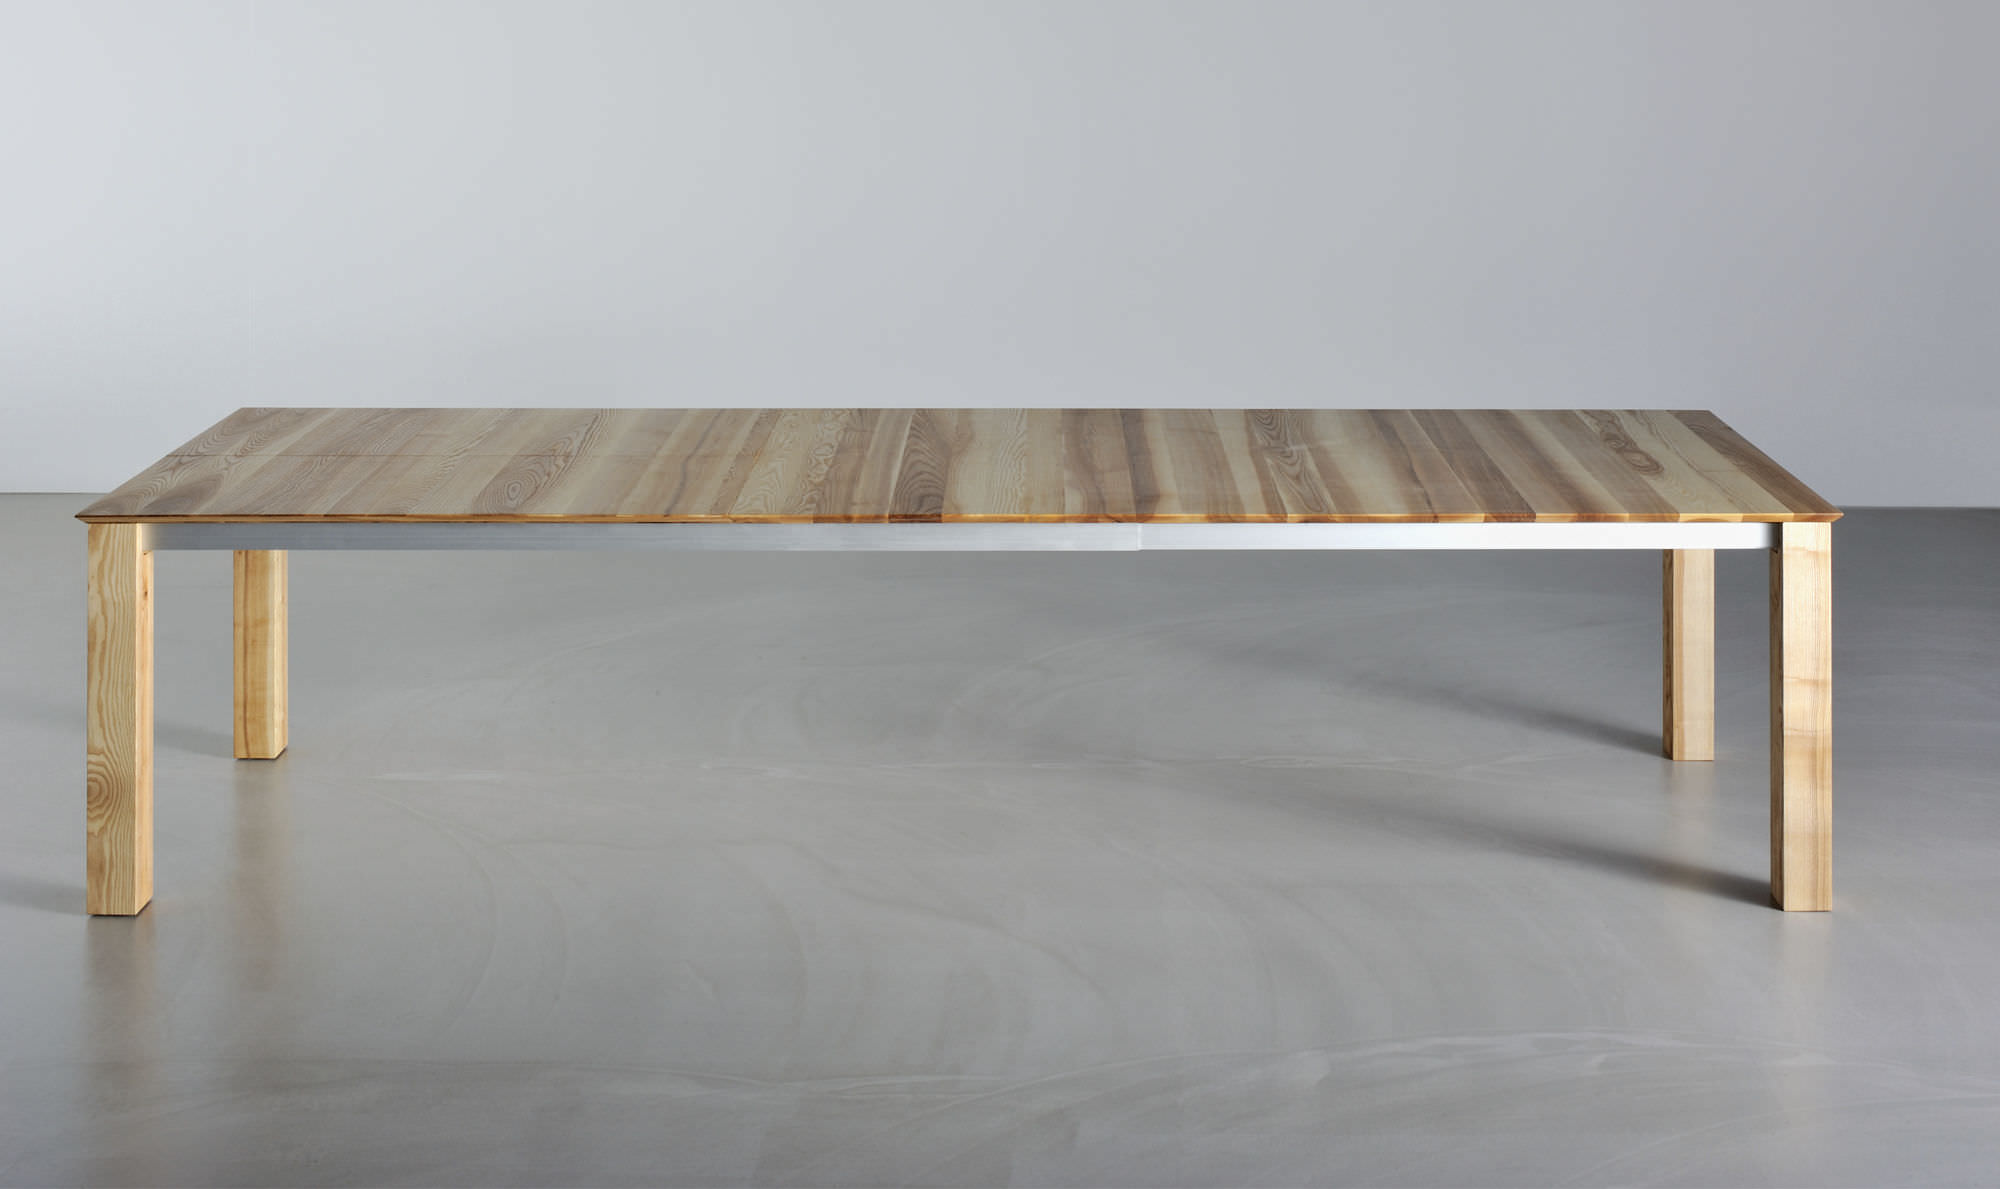 Wood table top designs - Contemporary Dining Table Solid Wood Rectangular Extending Slim